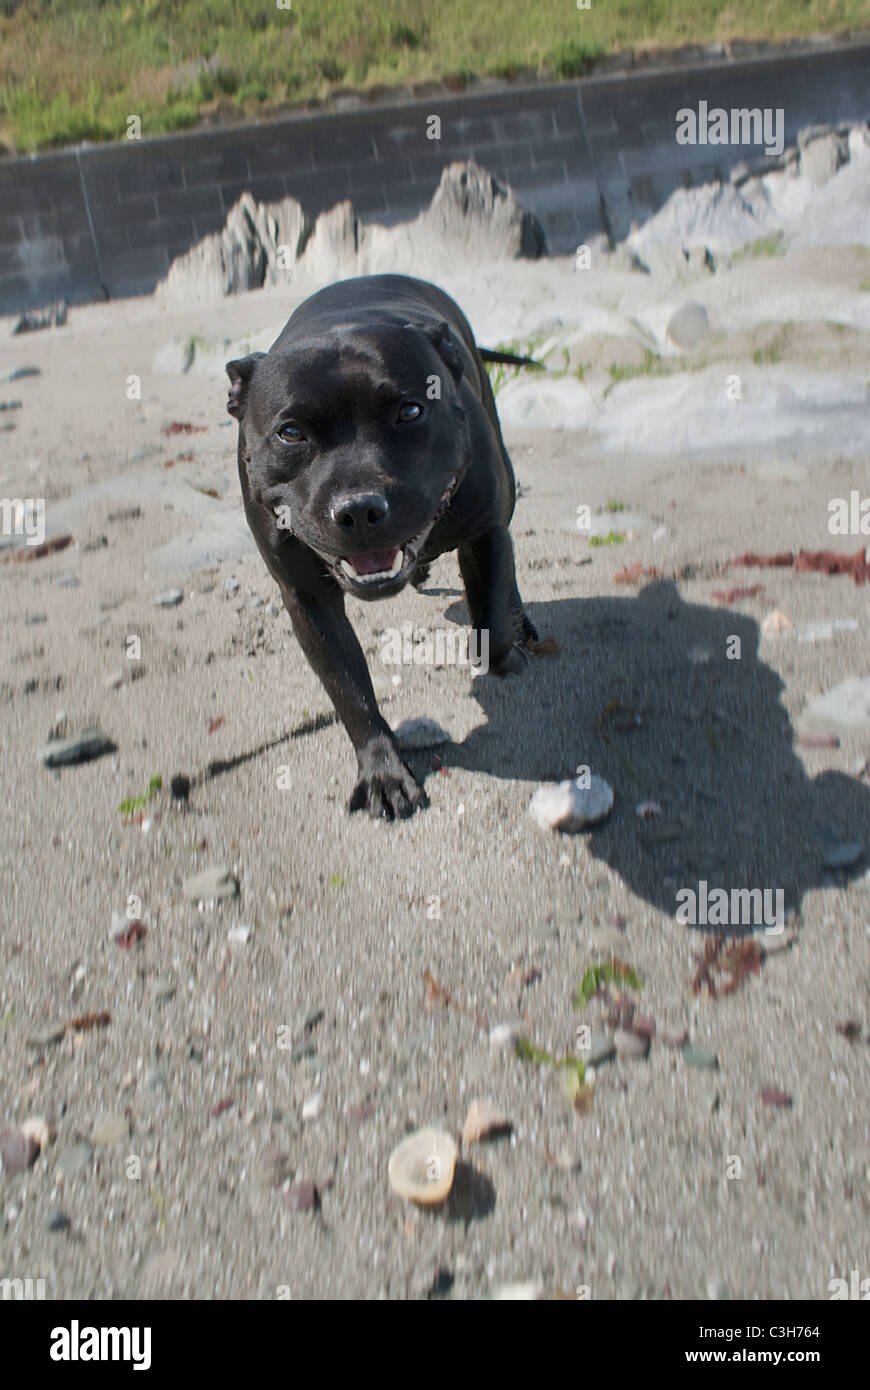 Black Staffie dog on the beach - Stock Image